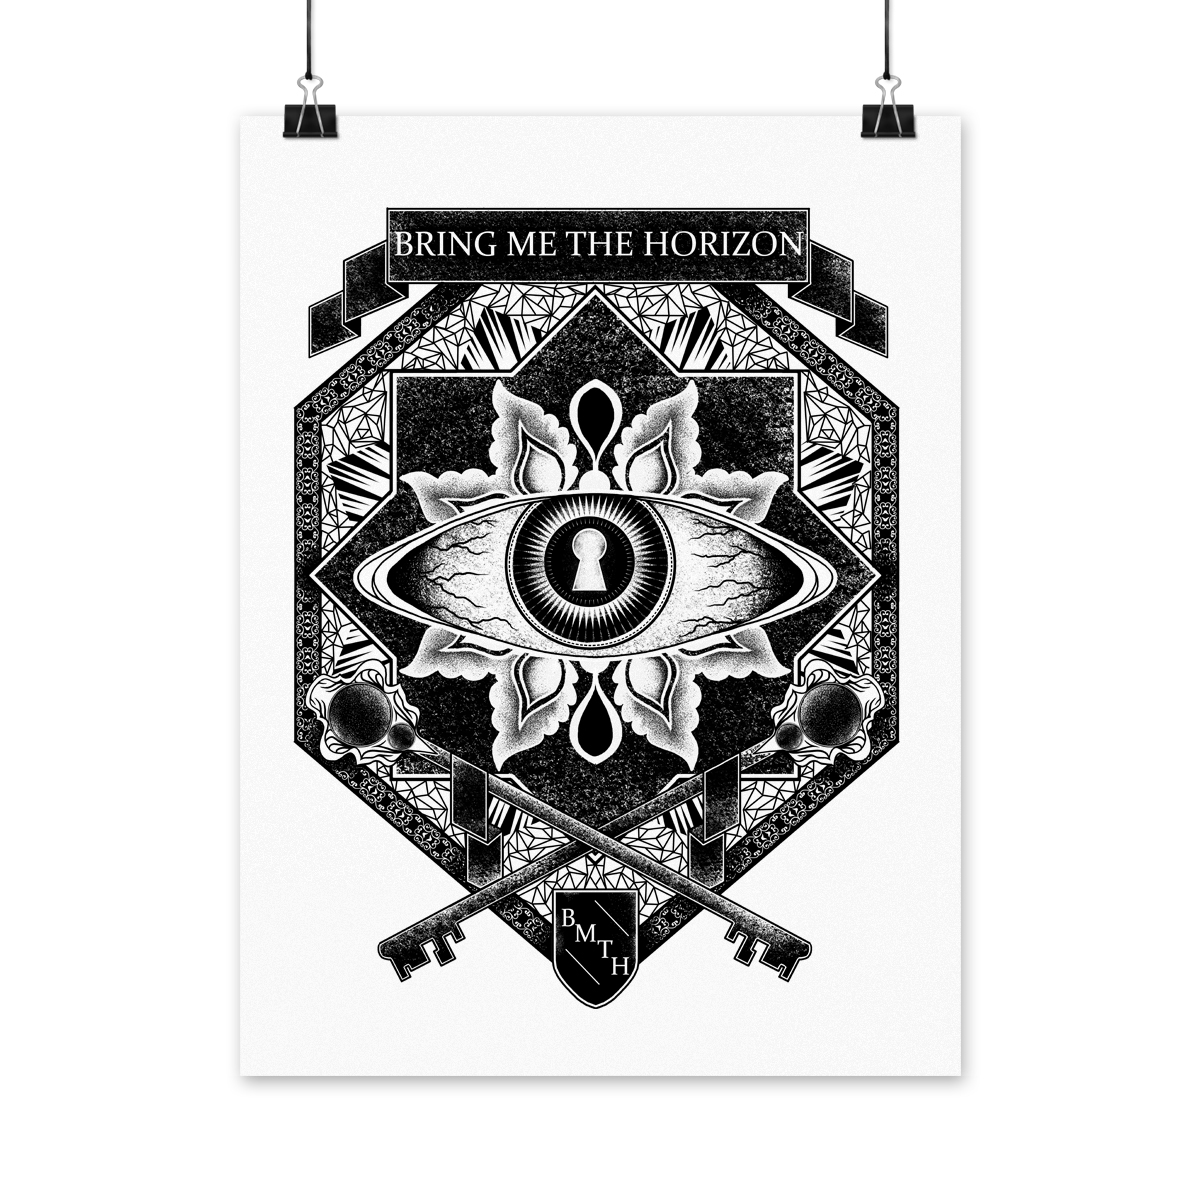 the gallery for gt bring me the horizon design